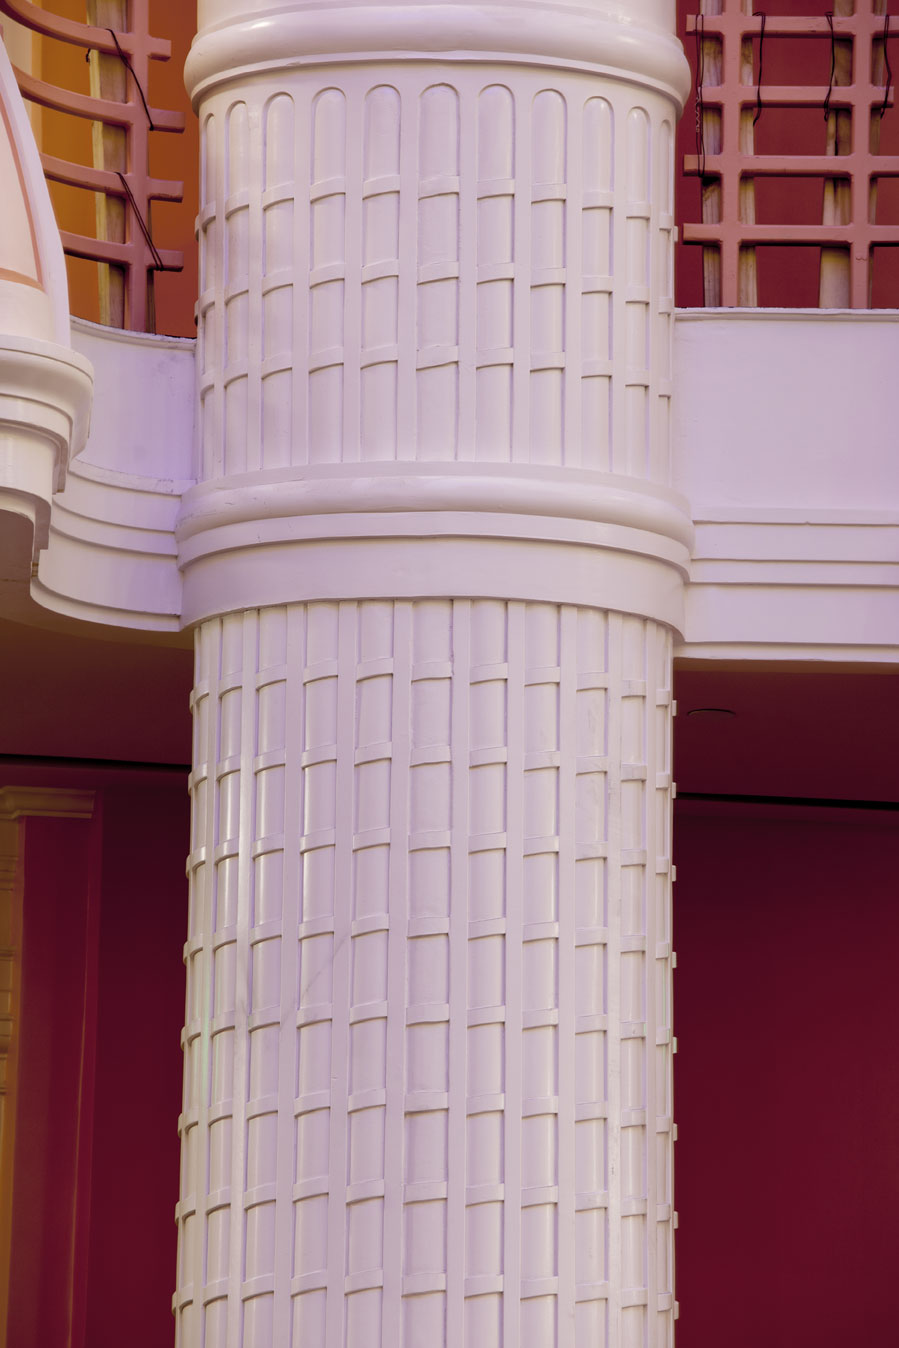 ... as well as the column designs.